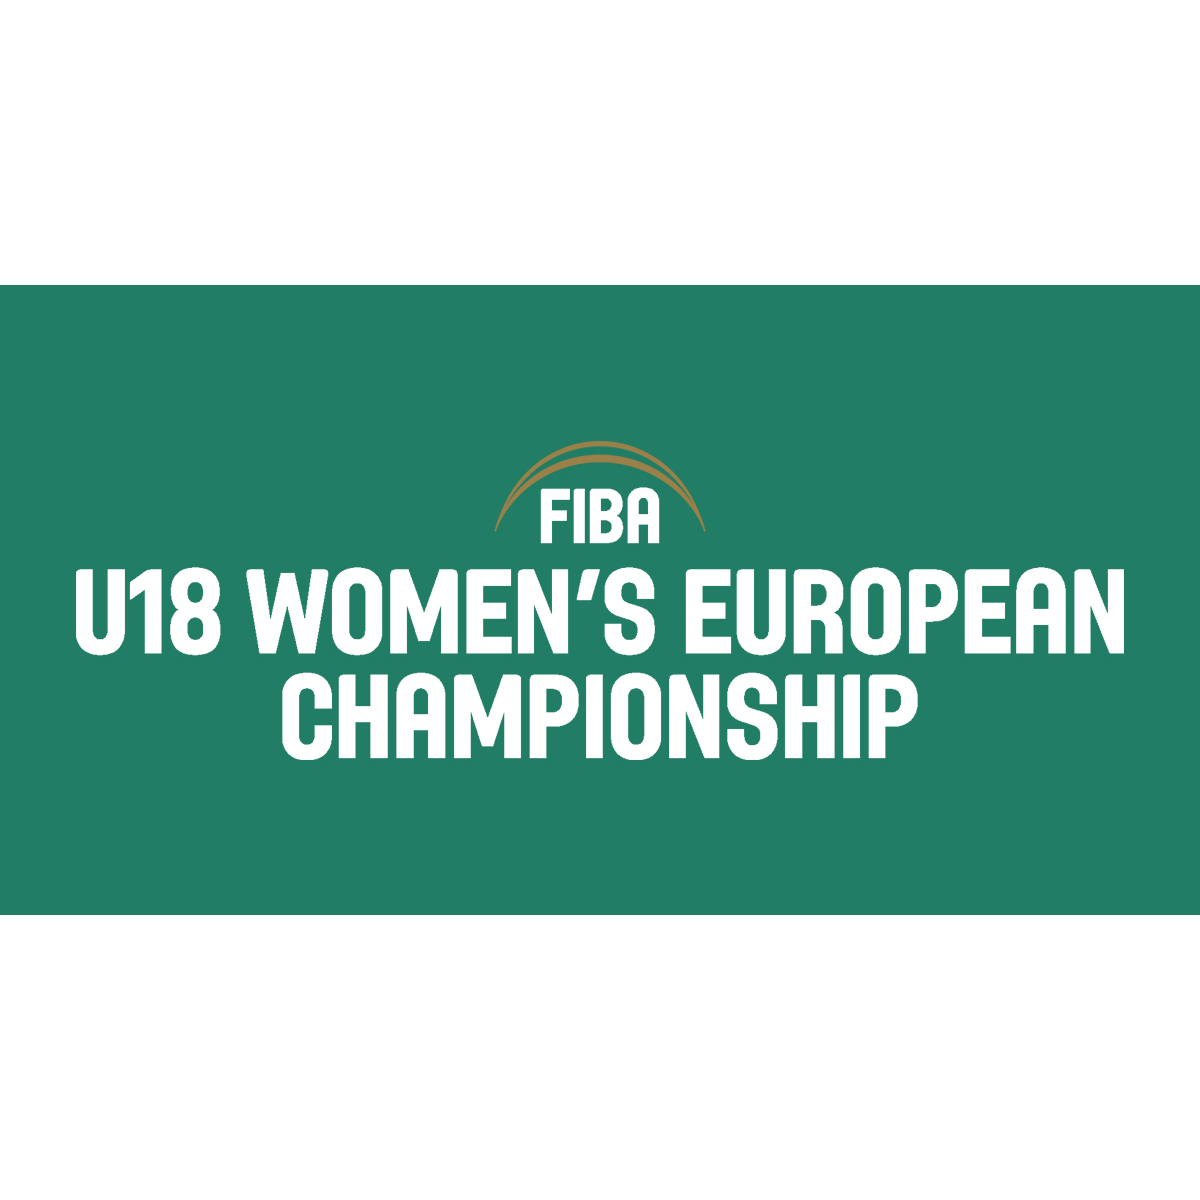 2017 FIBA U18 Women's European Basketball Championship